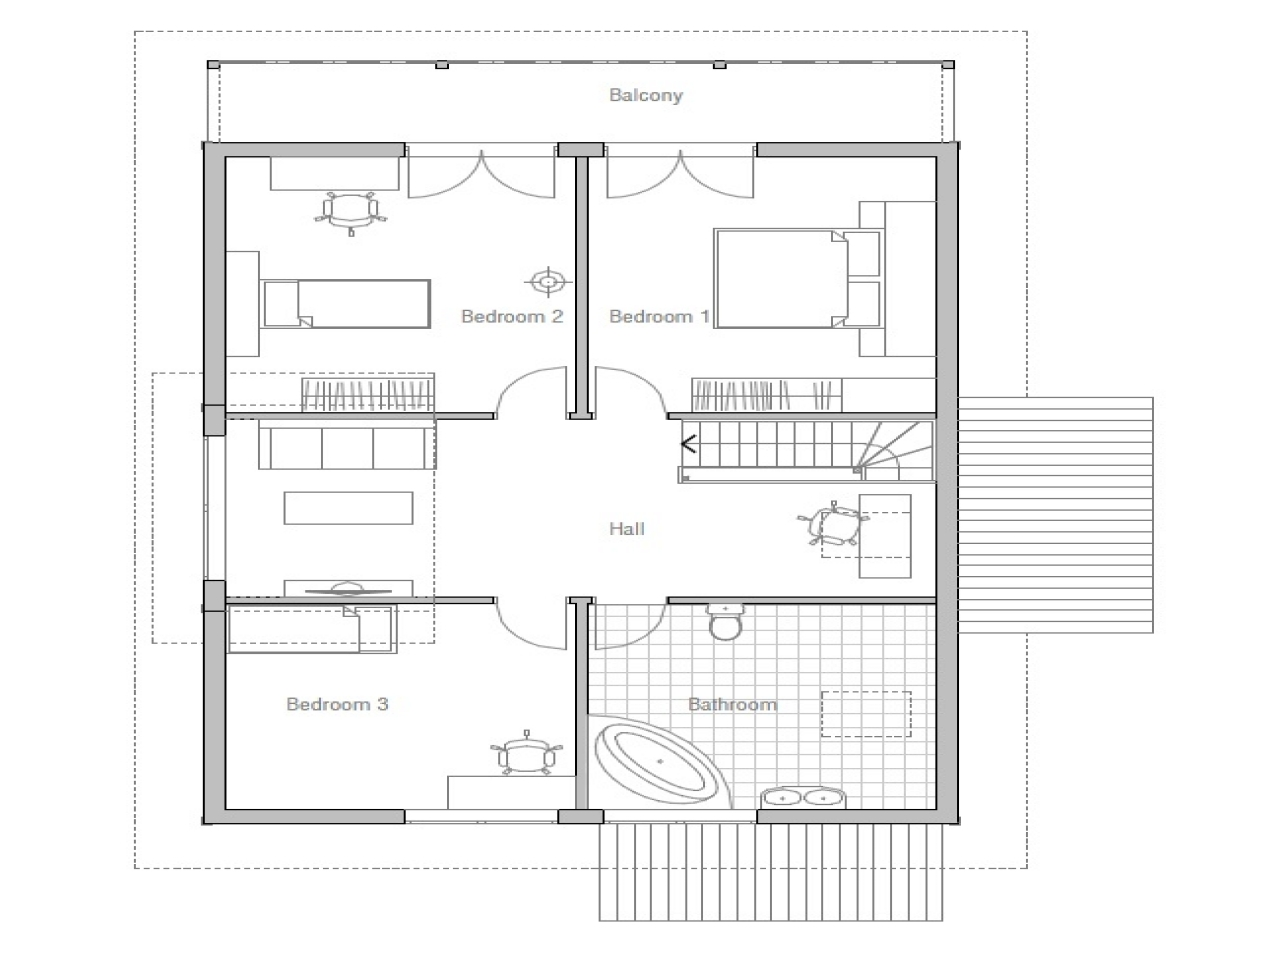 2 Bedroom Design Small House Small Affordable House Plans Small Two Bedroom House Plans